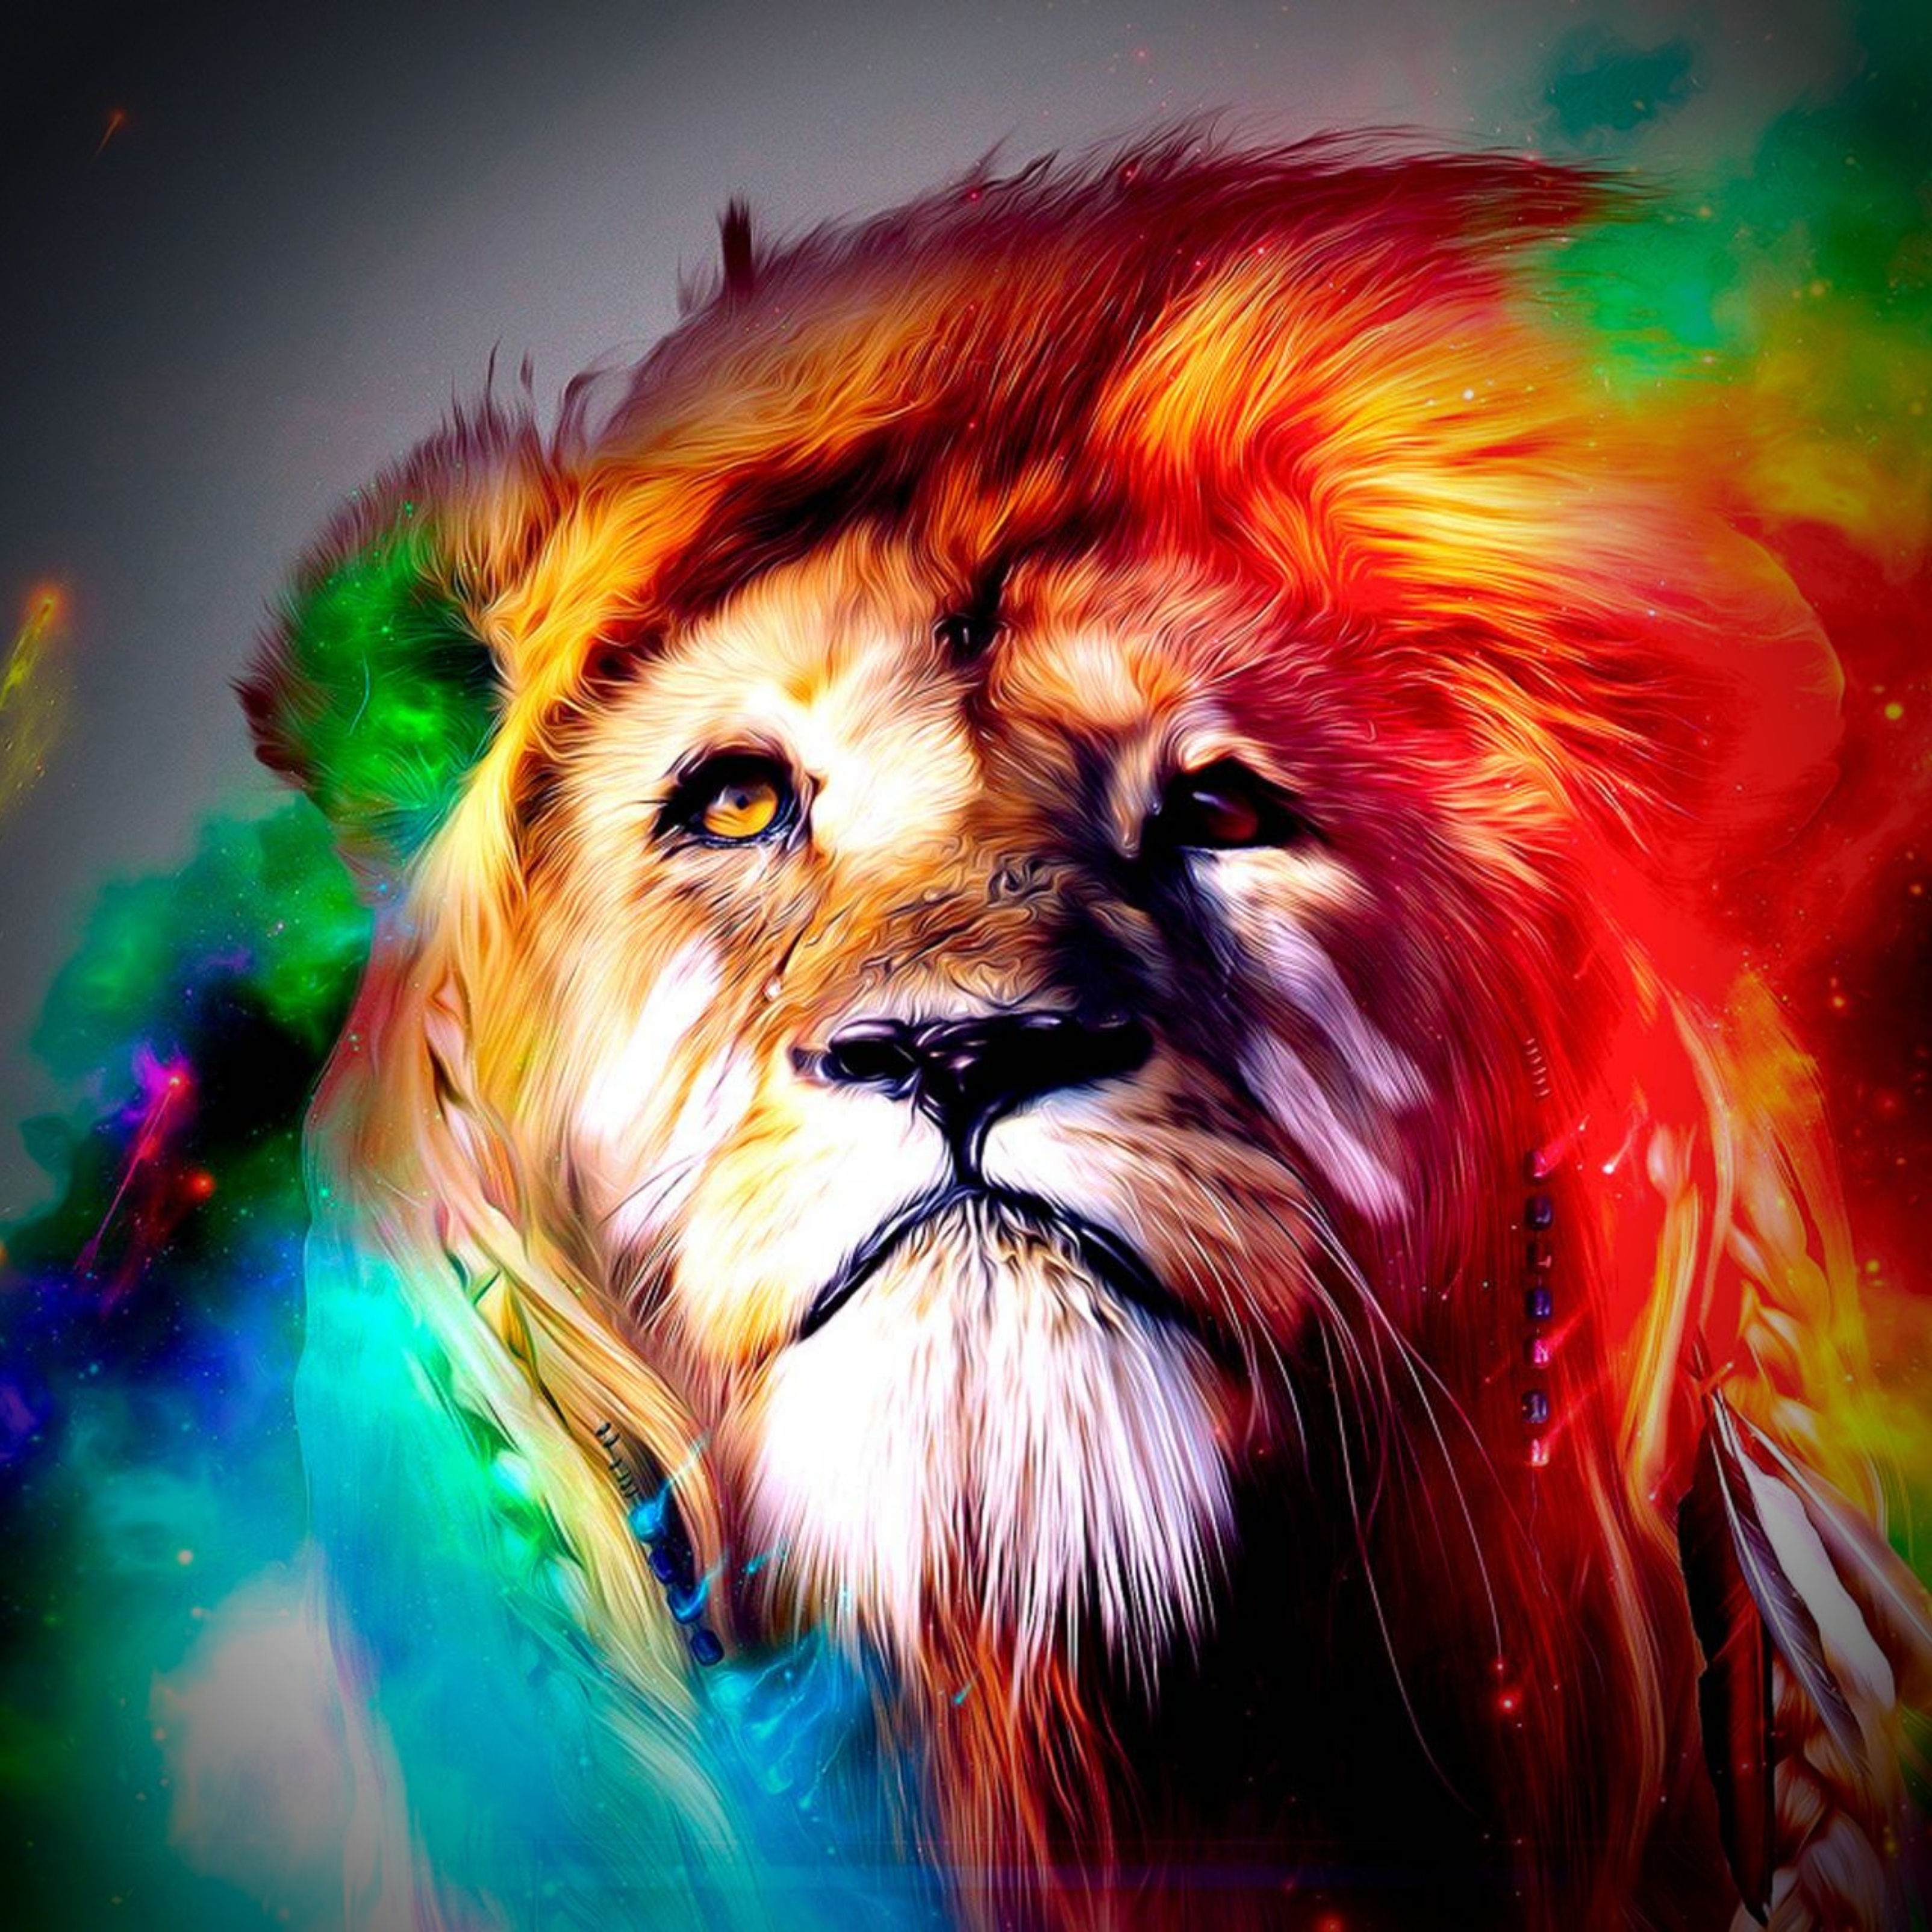 2021 iPad Wallpapers 4K Lion Colorful Face iPad Wallpaper HD 3208X3208 px Resolutions